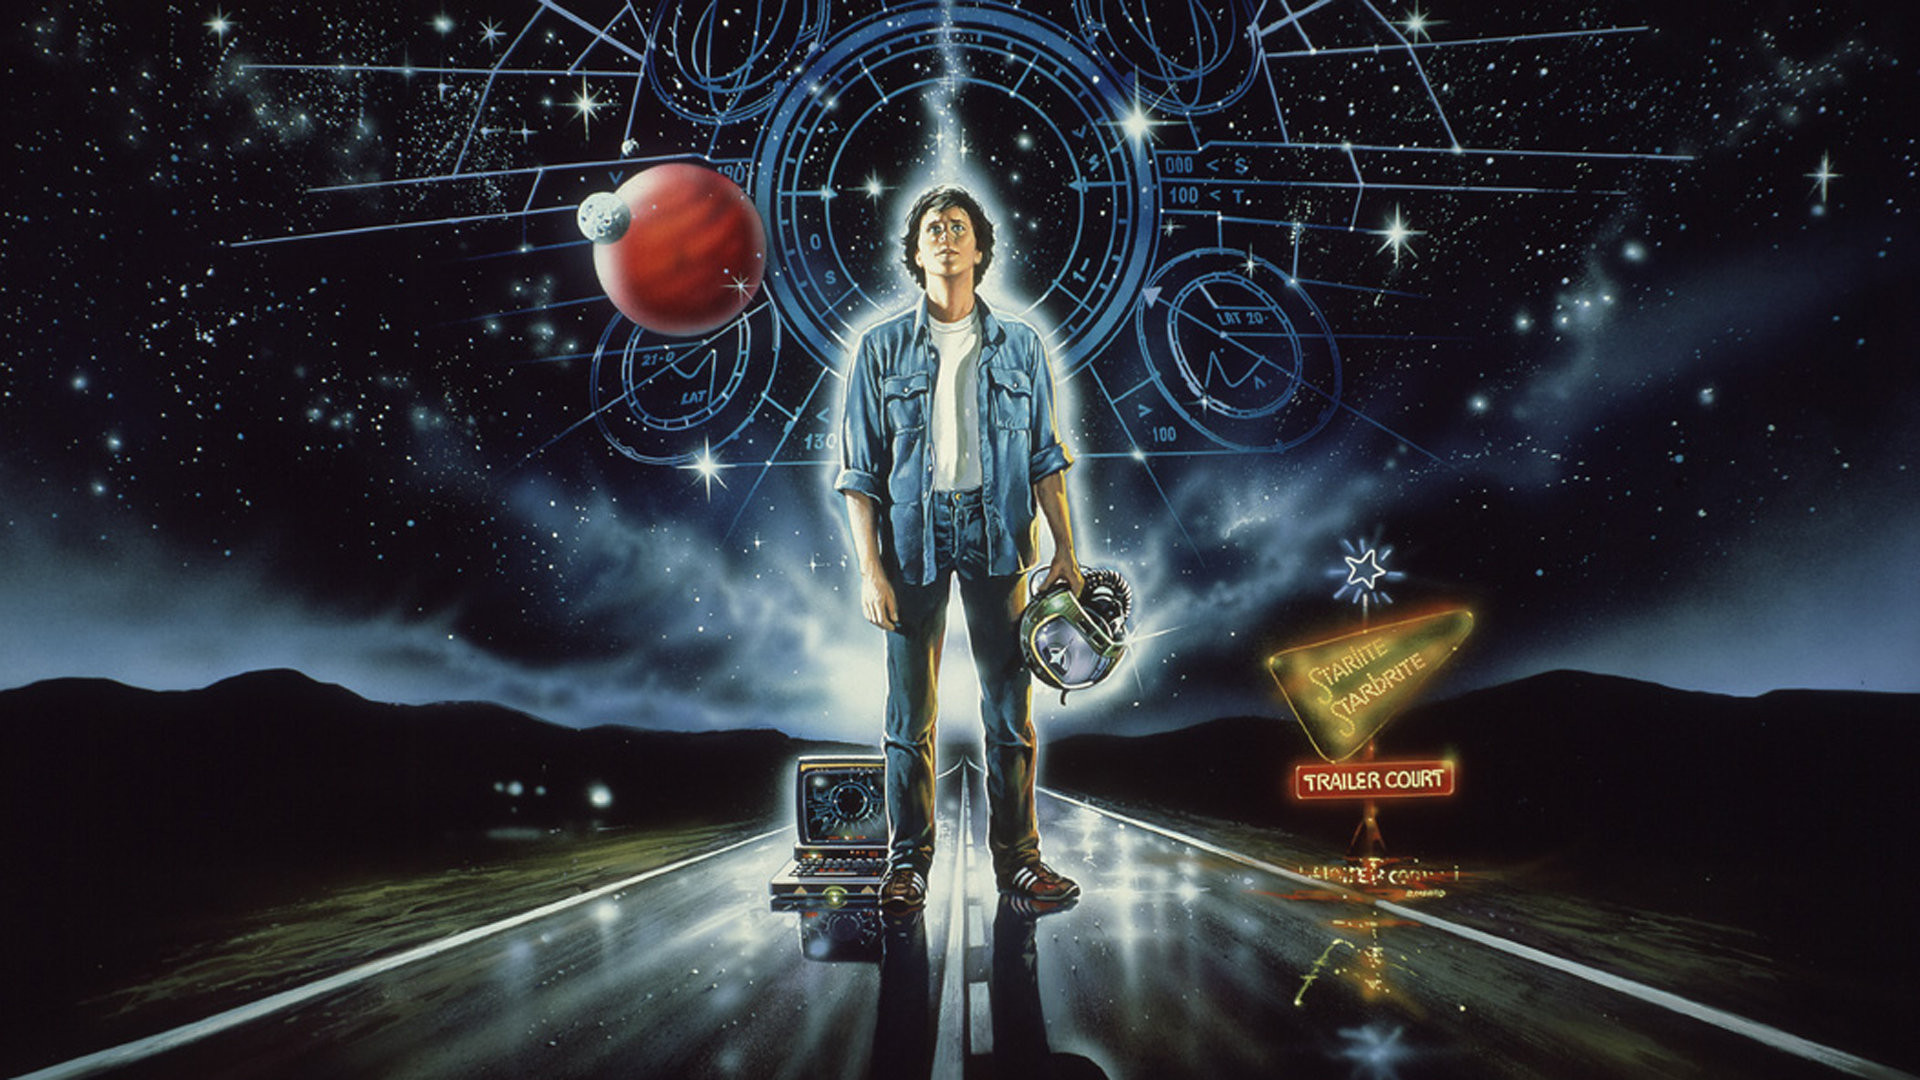 The Last Starfighter 2 Inching Closer With Star Wars Writer | Den of Geek